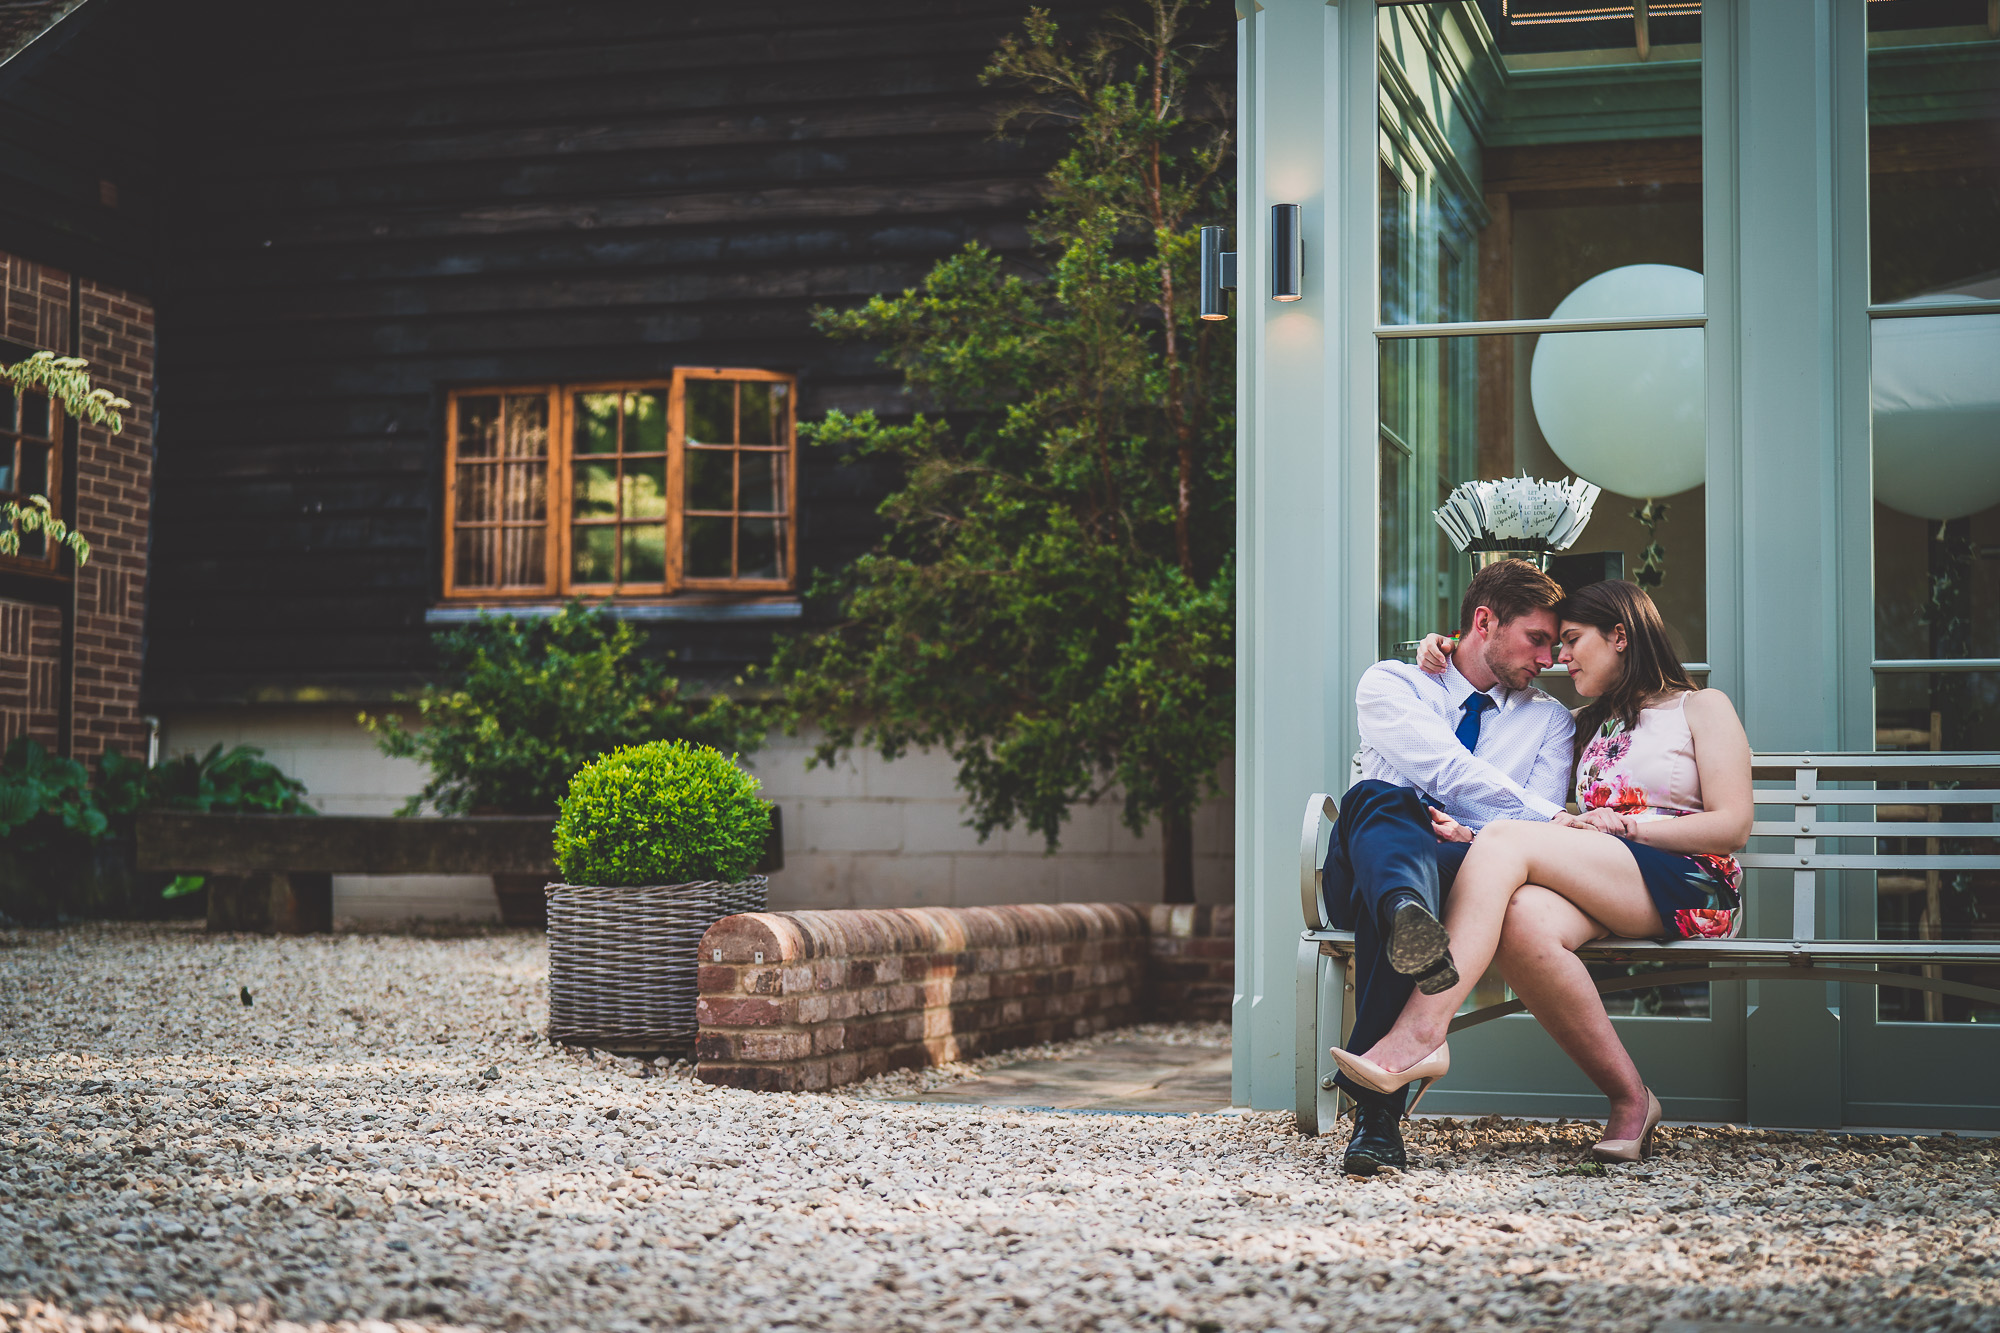 Gate Street Barn Wedding Photography | Nikki & Rich Gate Street Barn Wedding Photyography 043